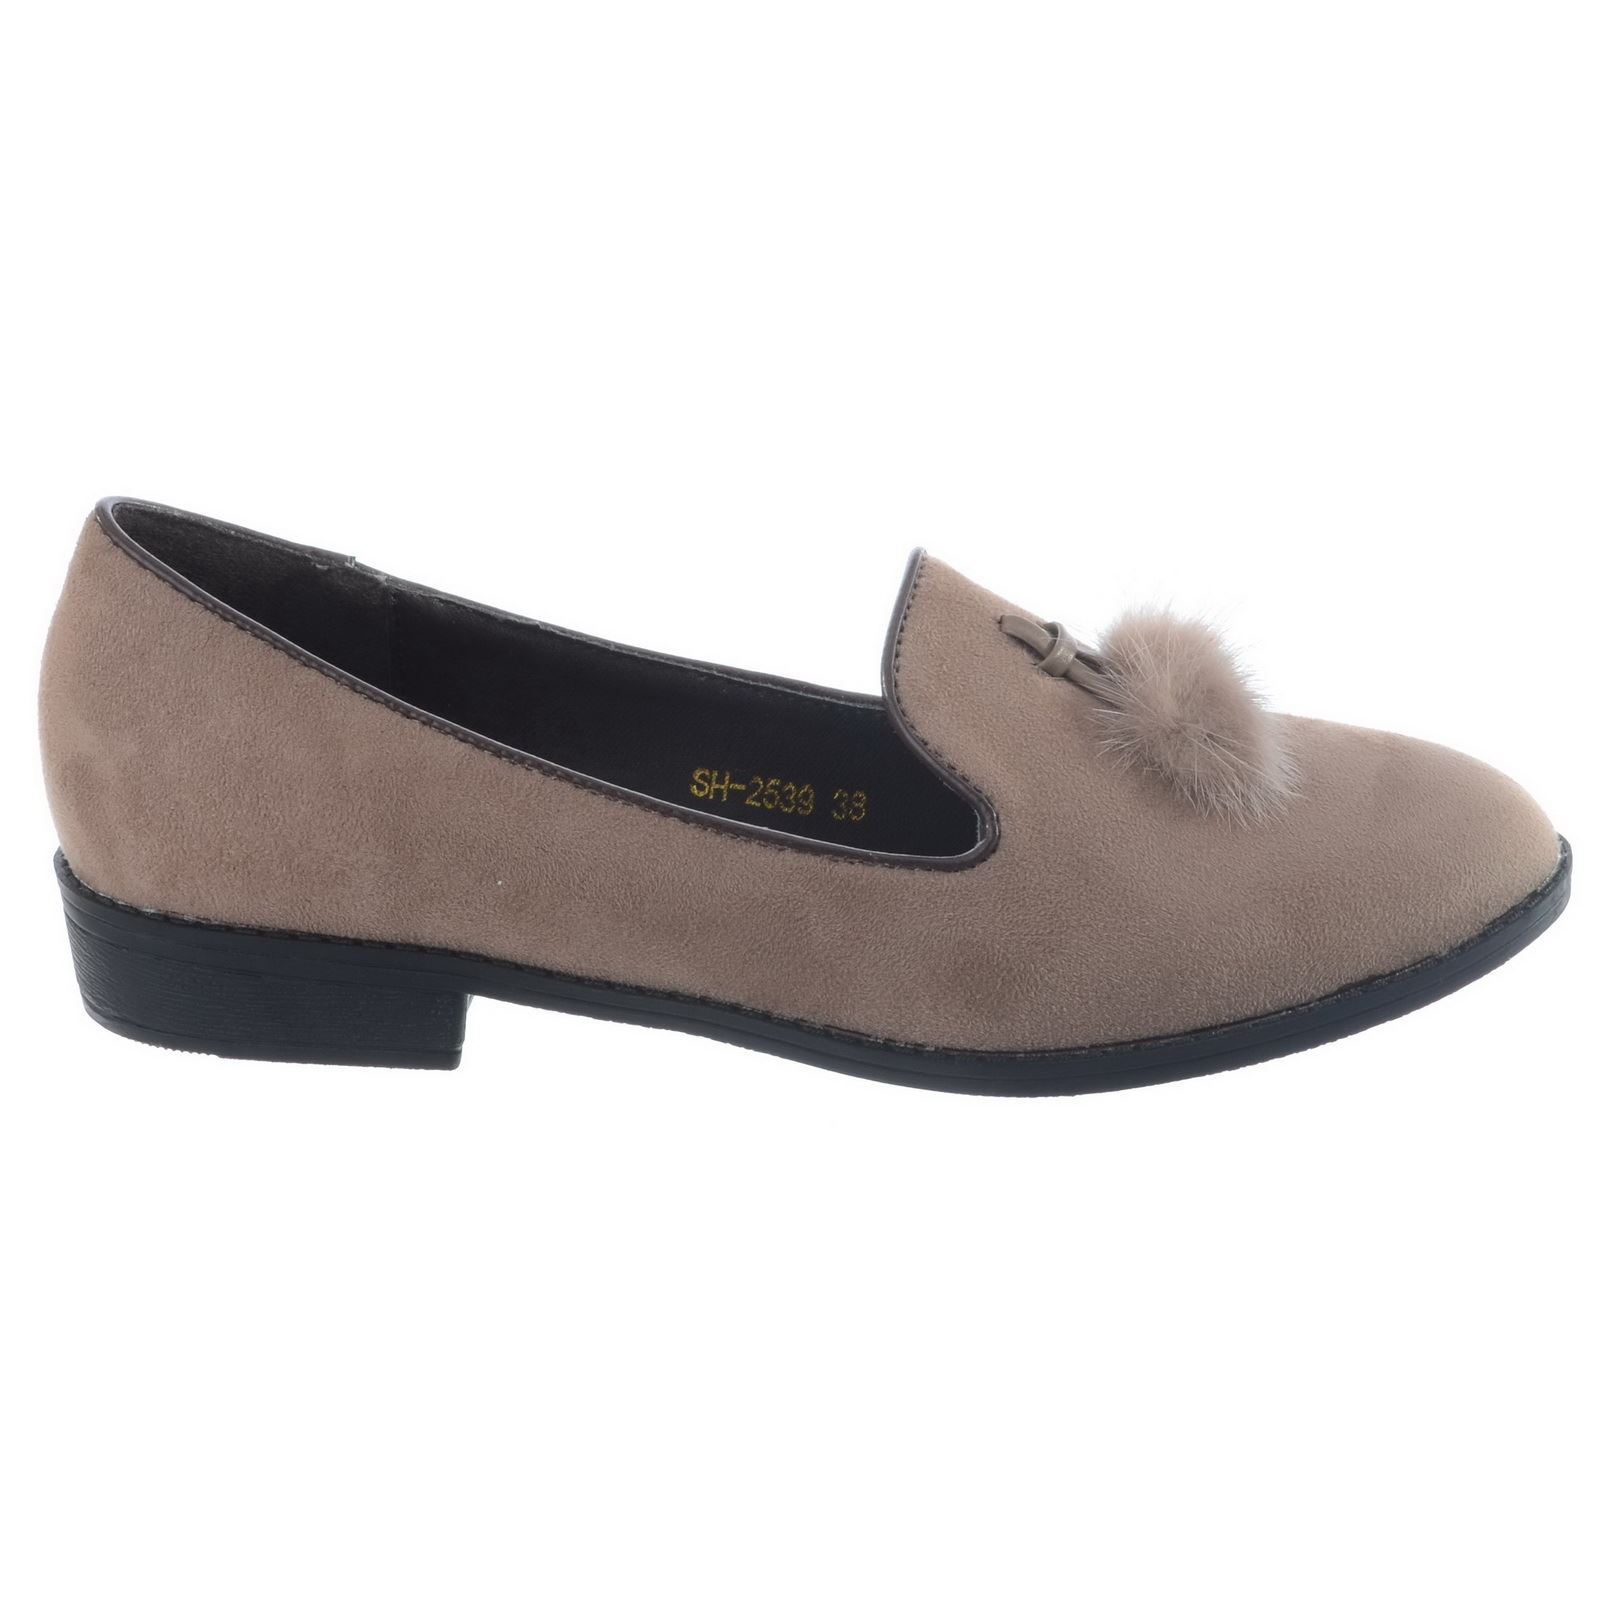 LADIES WOMENS GIRLS SLIP ON DOLLY BALLET PUMPS FUR TASSEL FLAT CASUAL SHOES SIZE